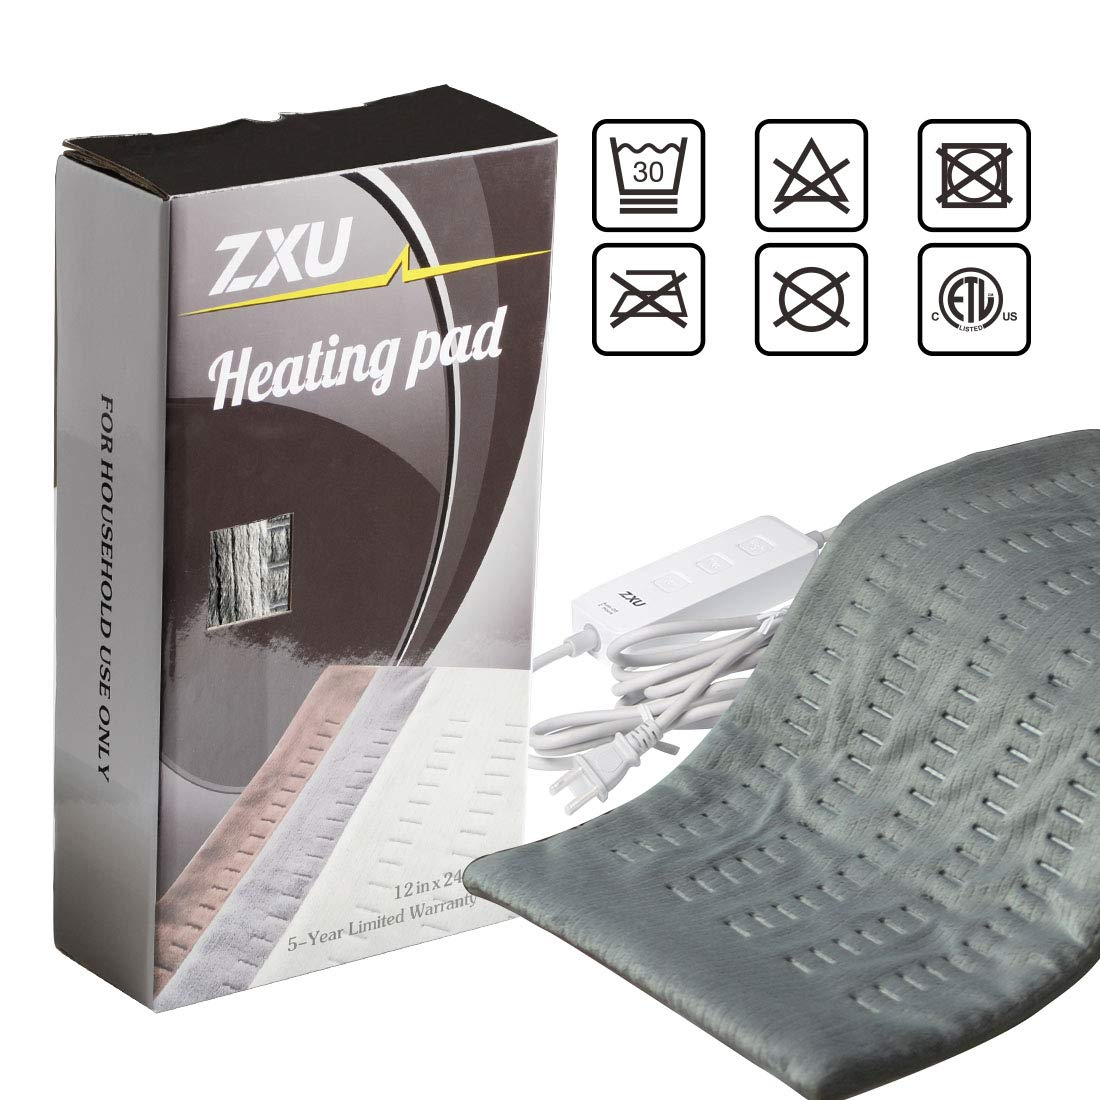 "ZXU XL Weighted Electric Heating Pad for Back Pain and Cramps Relief - Fast Heating Hot Pad with Auto Shut Off [12""x24""]"